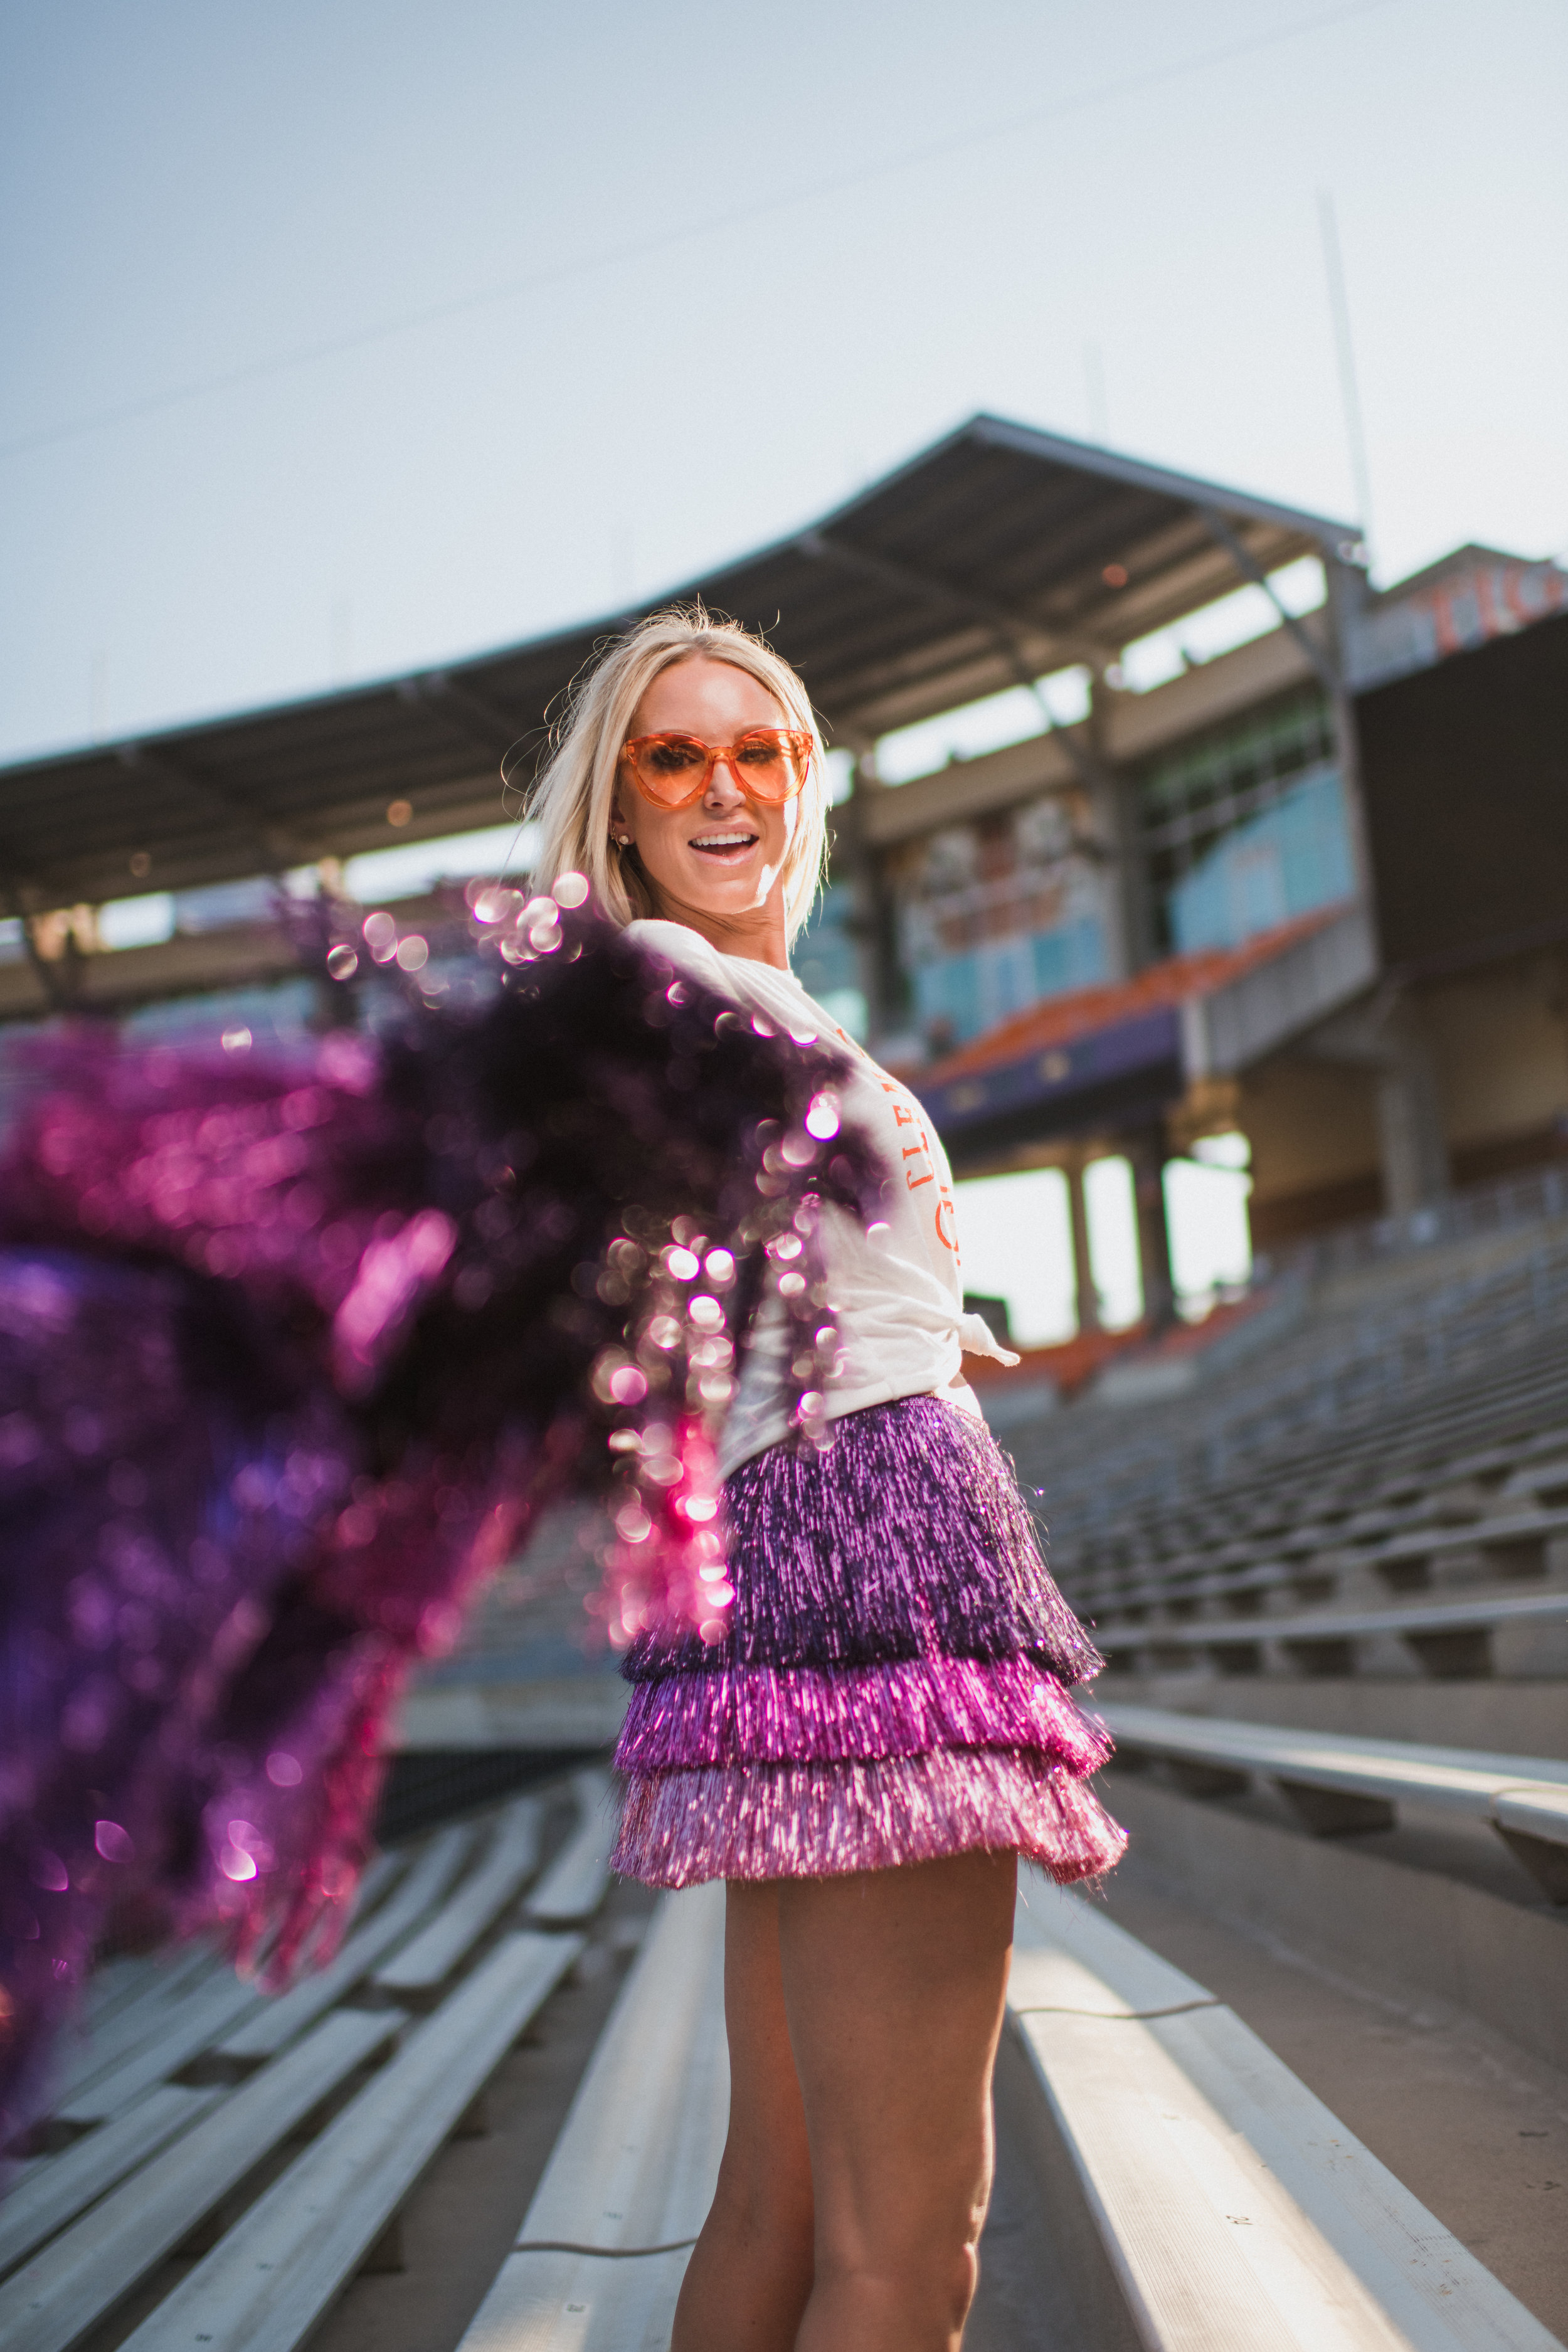 It's about that time to walk these steps for A&M. - I hope you feel inspired to think a little outside your tailgate attire comfort box this football season. I'll be showing up to the tailgate on purpose and possibly in fringe…maybe you will too.So push your shoulders back with me and walk in that stadium like you own it, because being you ROX!Until next time.Lyv